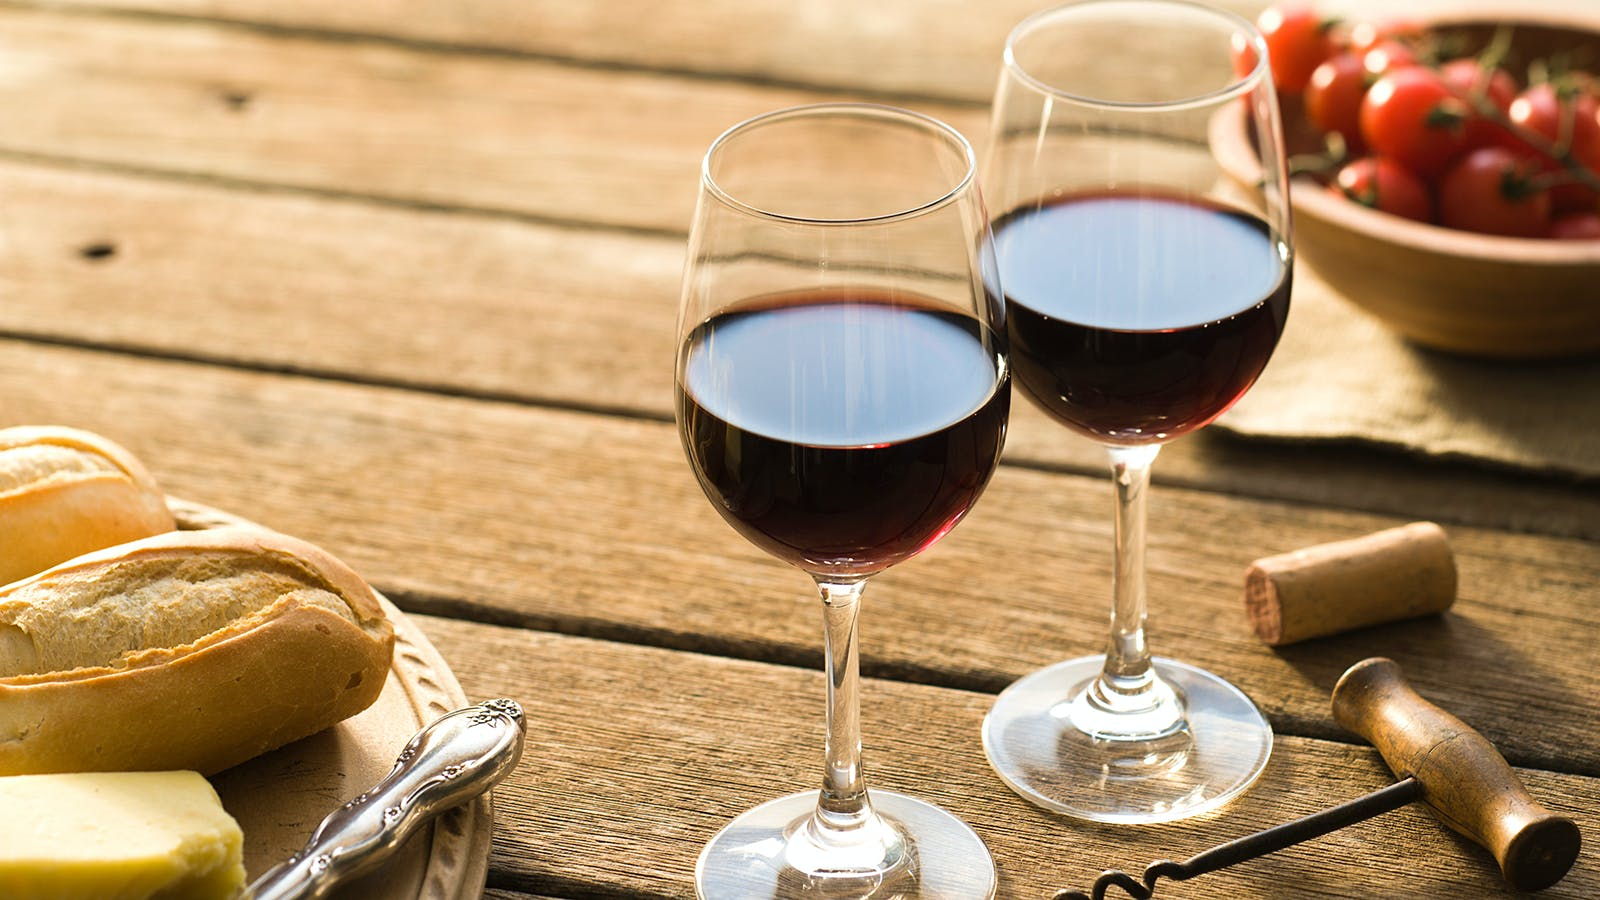 U.S. Government Decides Not to Redefine Moderate Wine Drinking